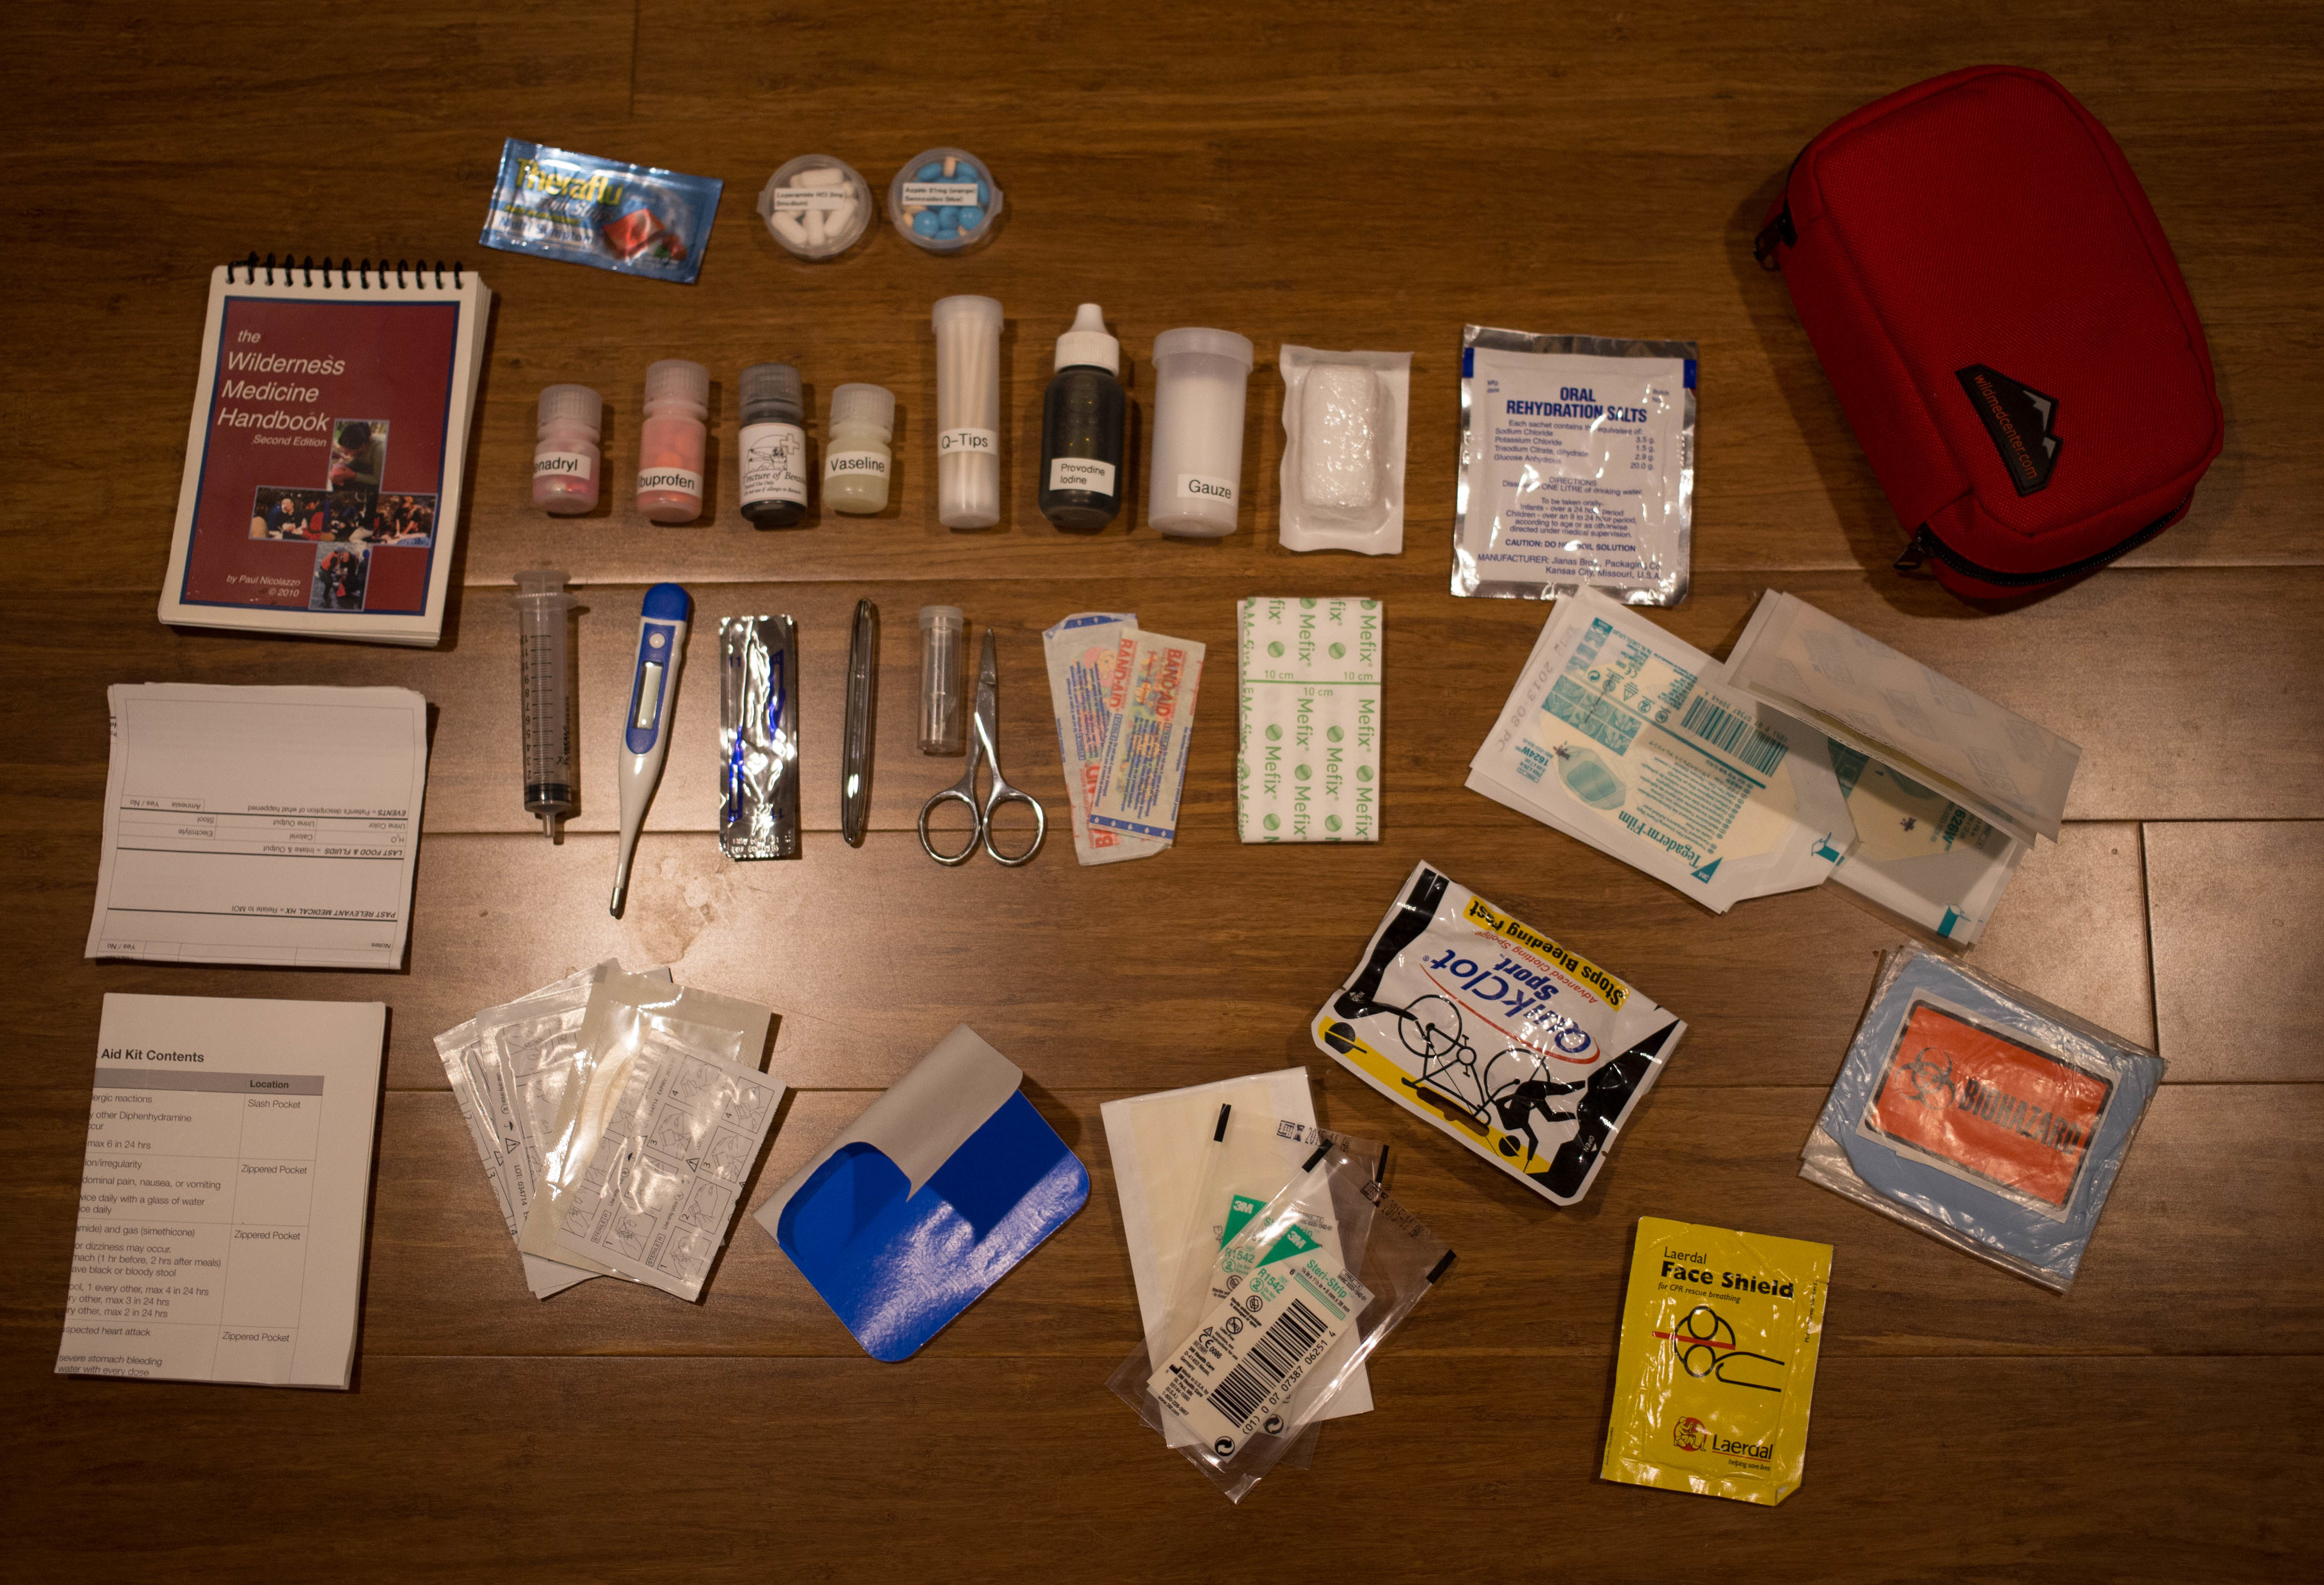 Personal First Aid Kit Contents